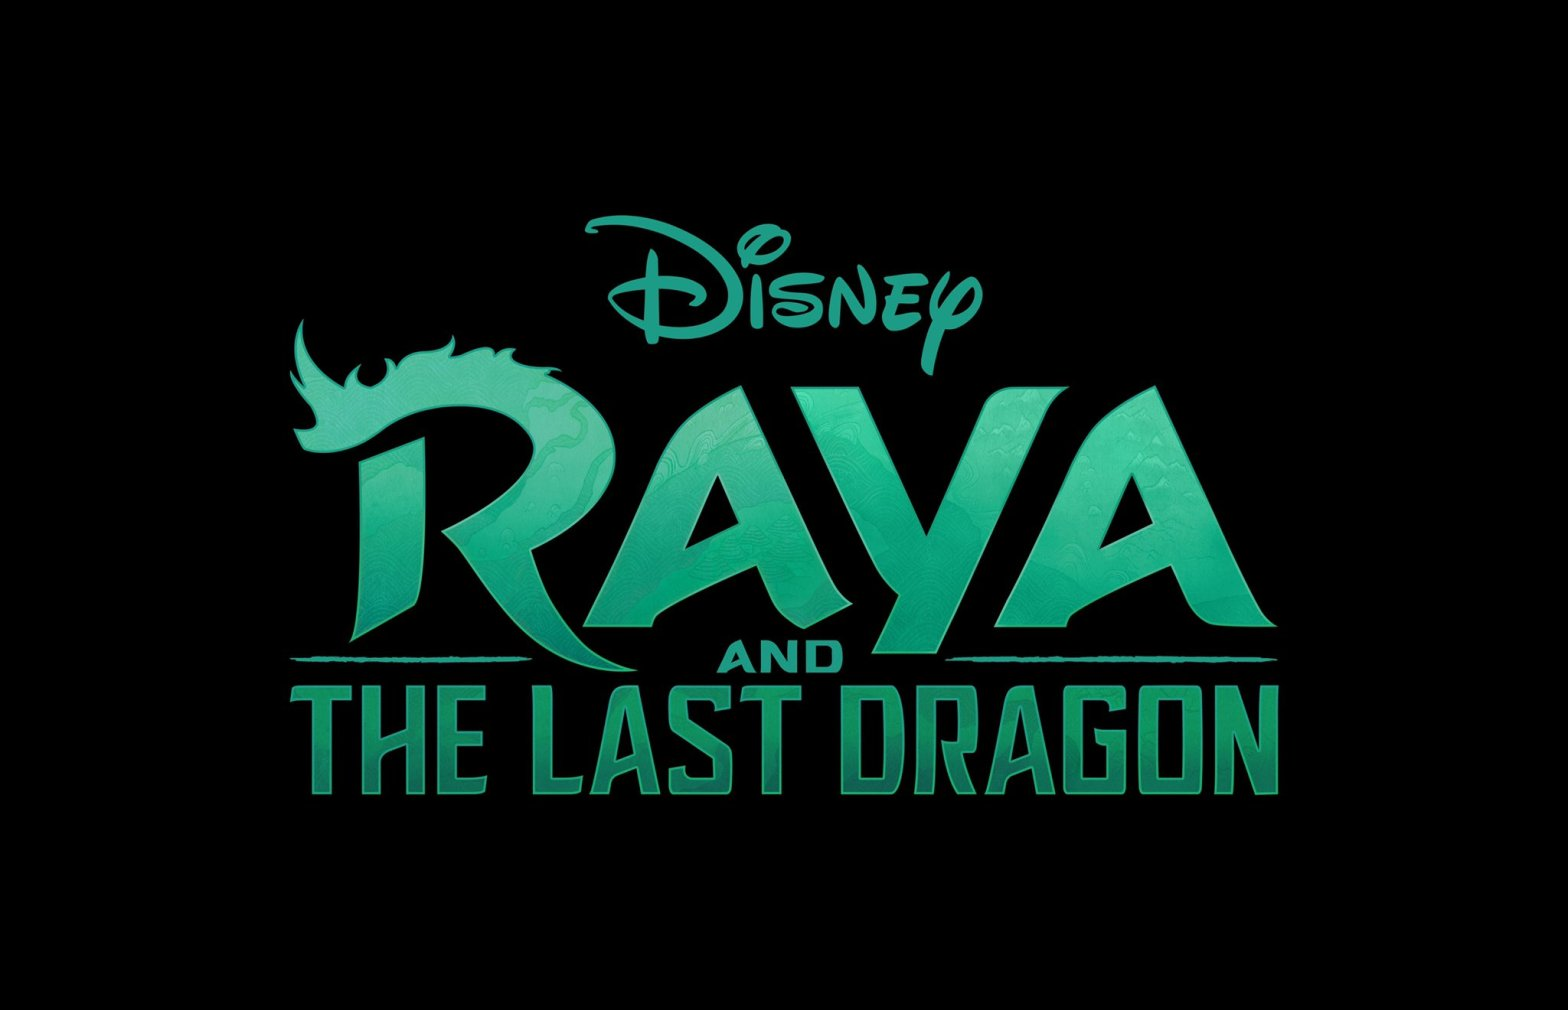 Titles for Raya and the Last Dragon